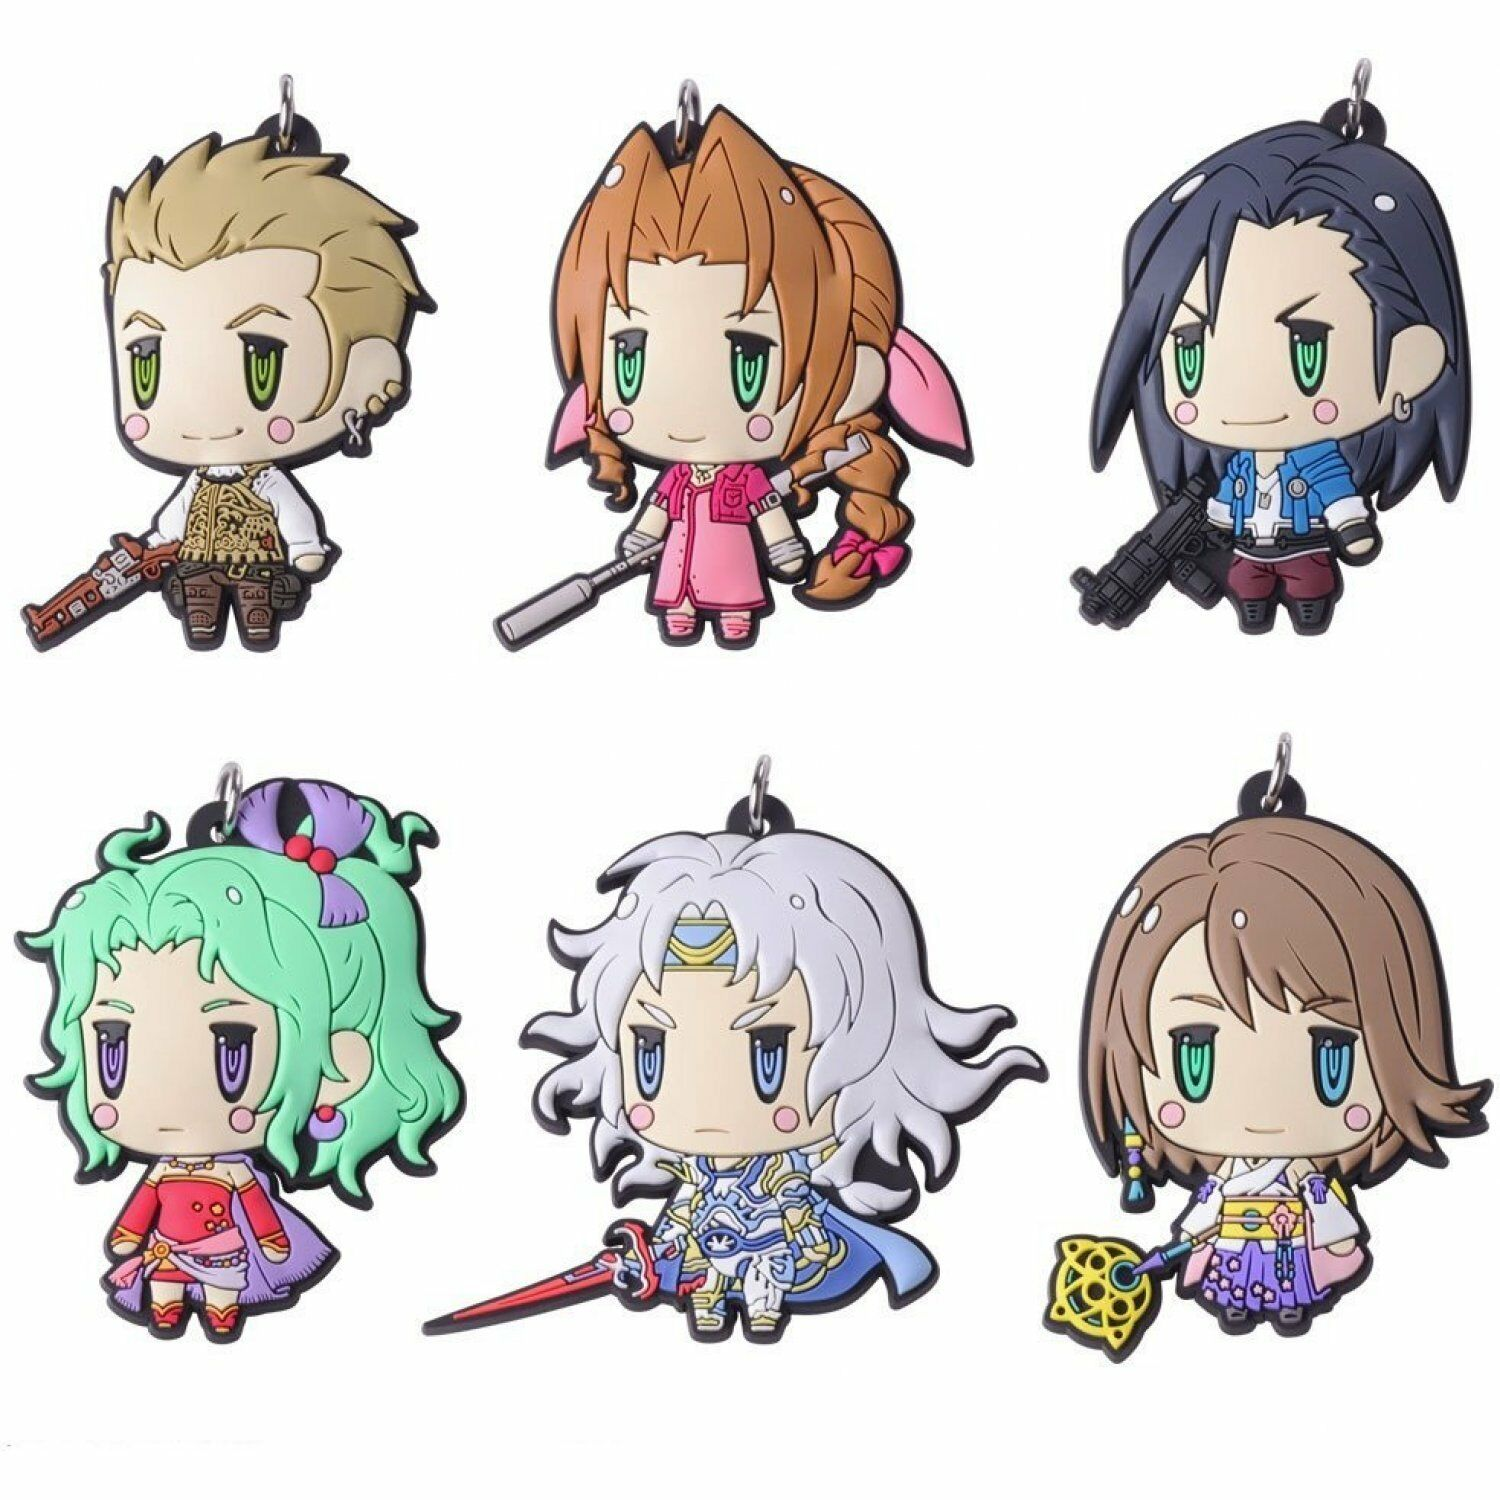 Final Fantasy Trading Rubber Strap Vol.4 BOX Item 1 BOX = 6 pieces, all 6 types